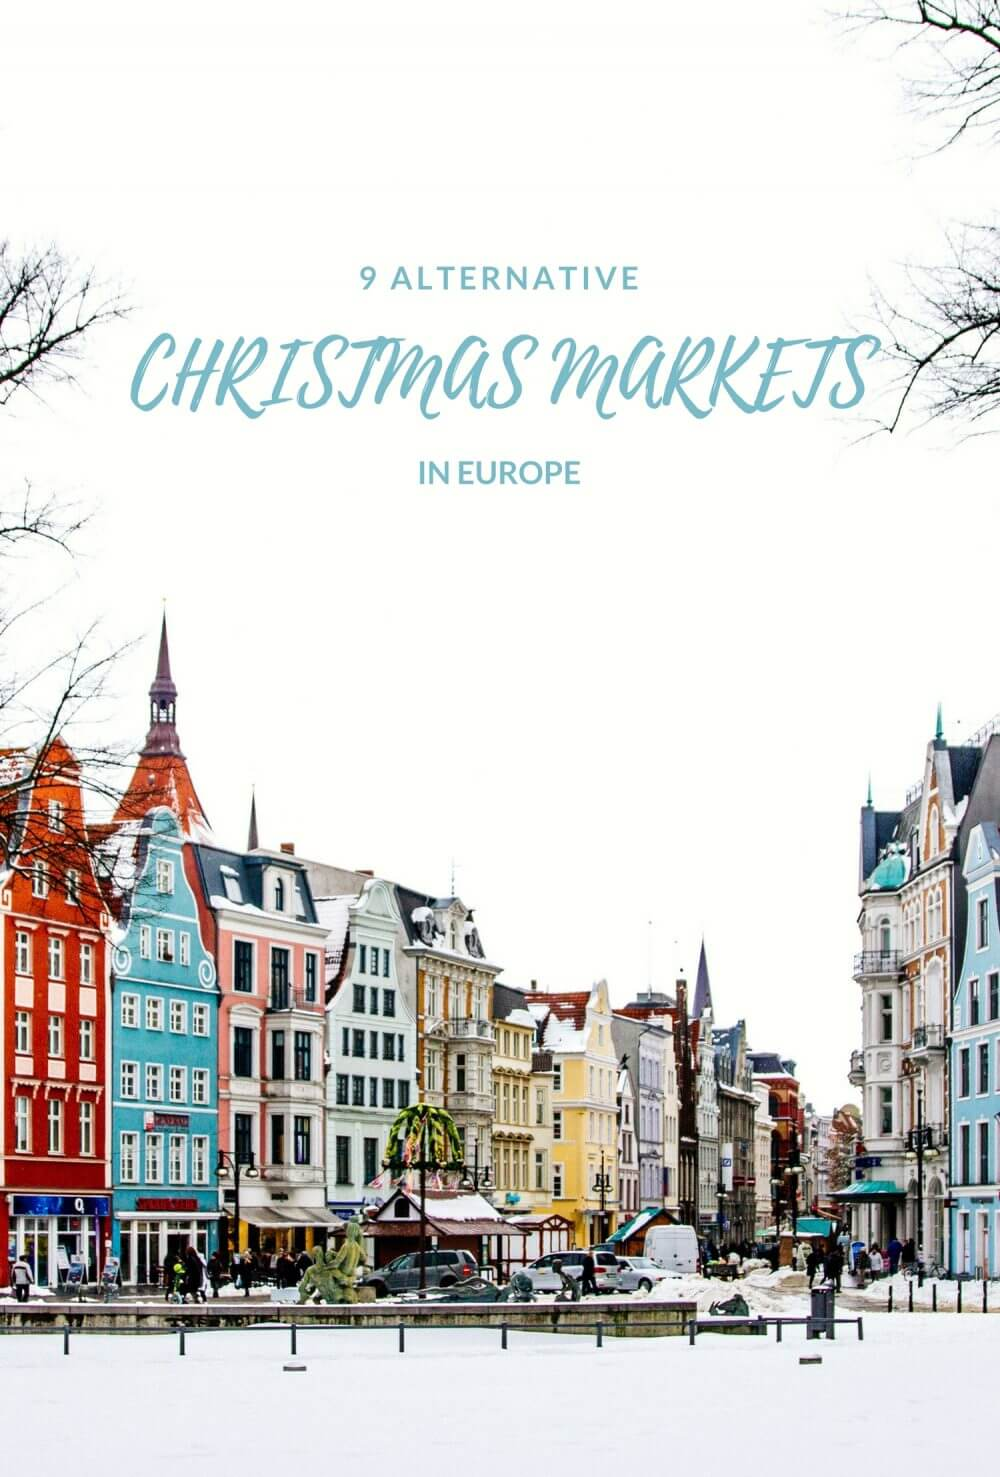 9 Alternative Christmas Markets in Europe